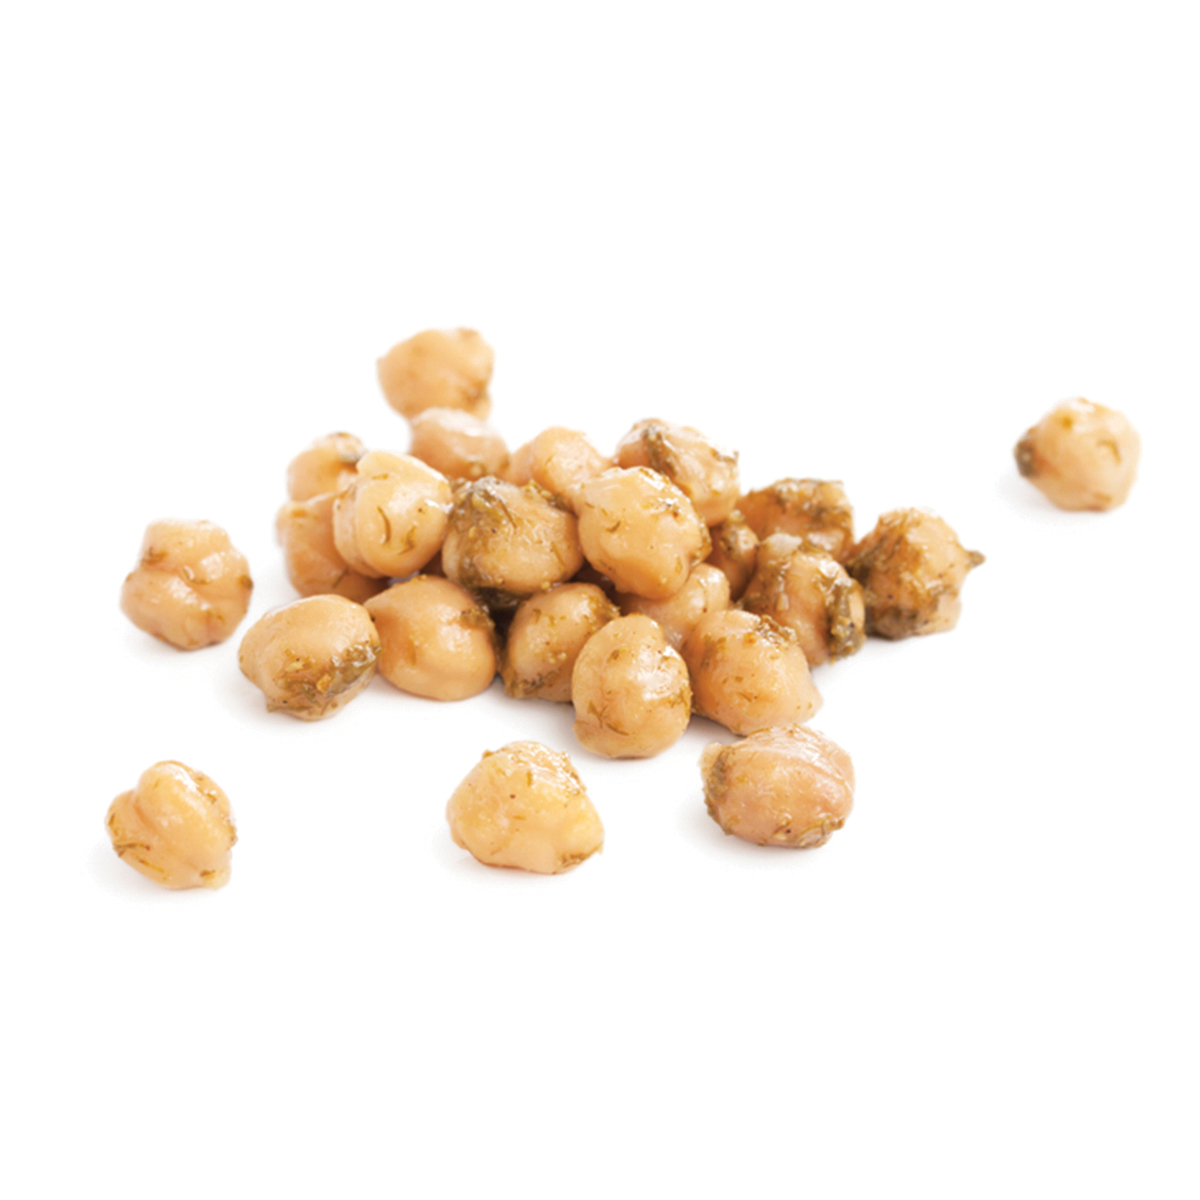 50880 - Chickpeas in Mediterranean Marinade